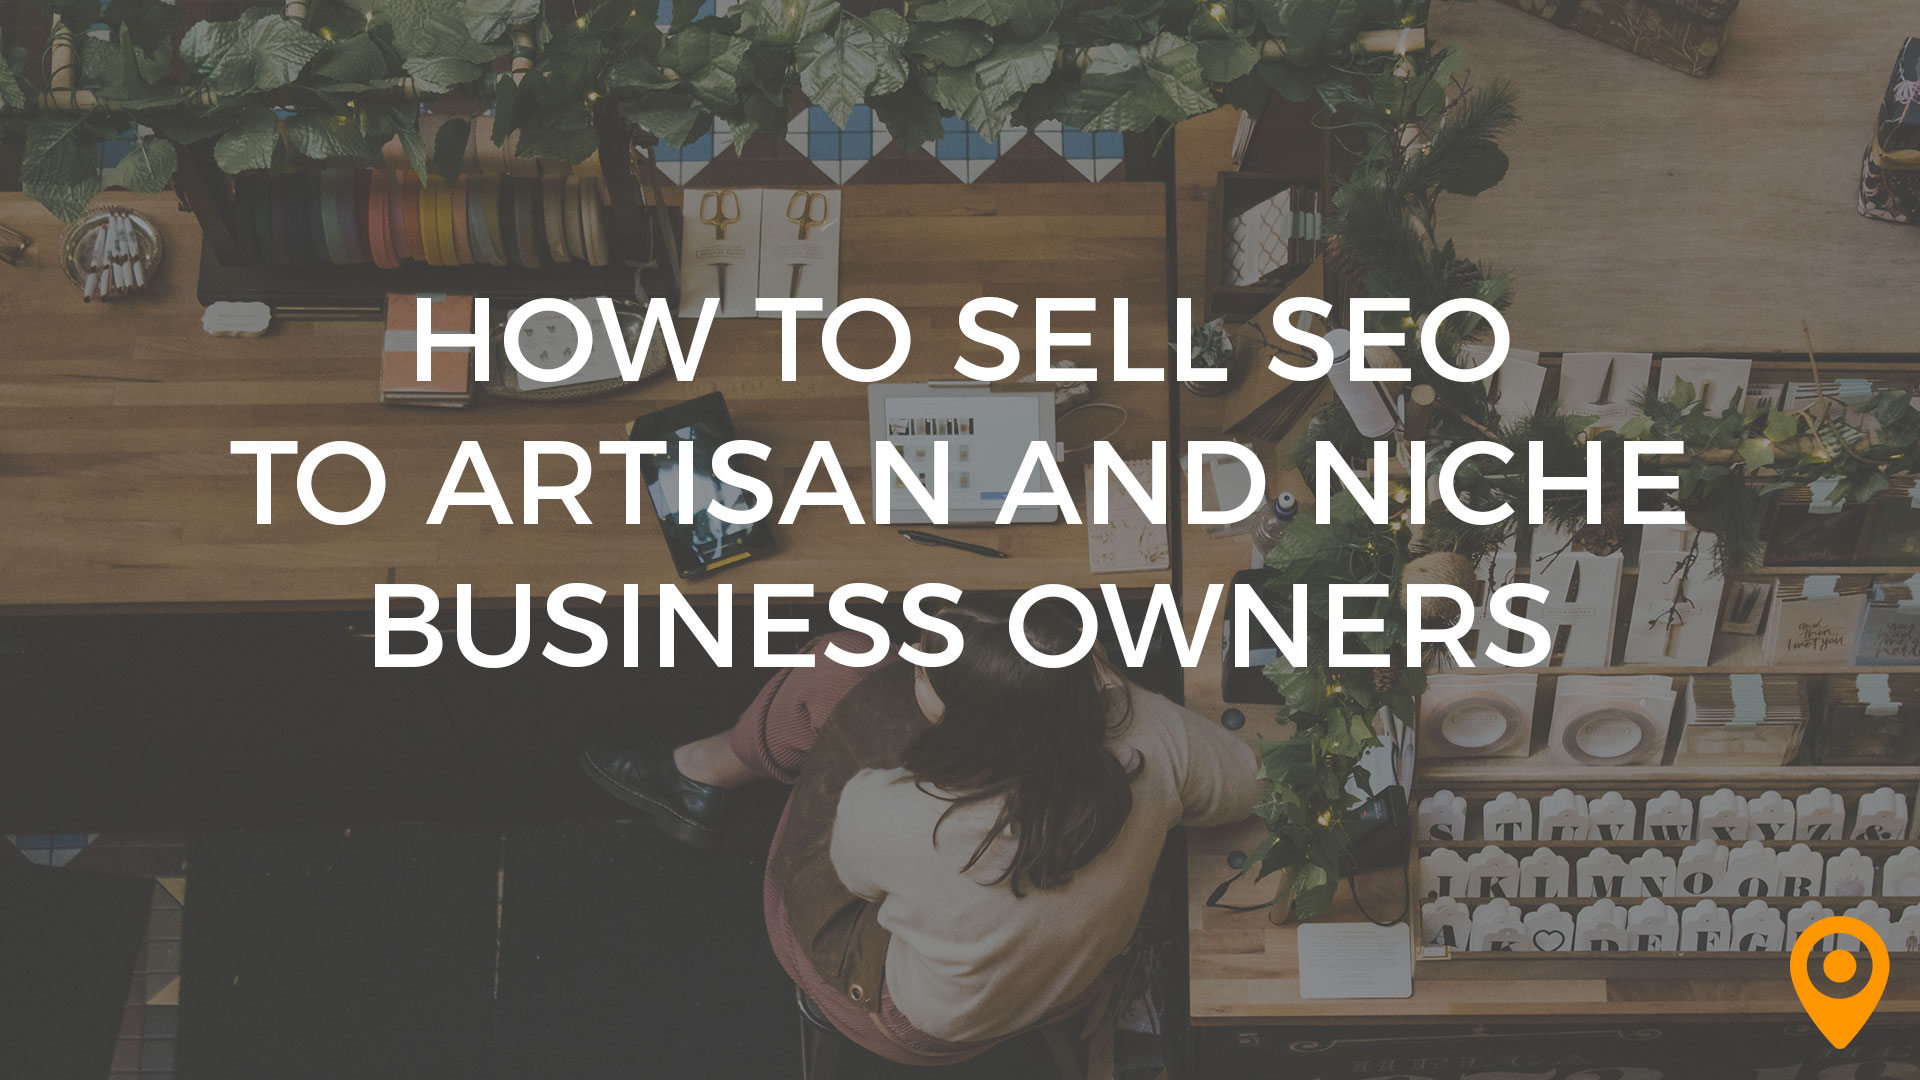 How to Sell SEO to Artisan & Niche Businesses